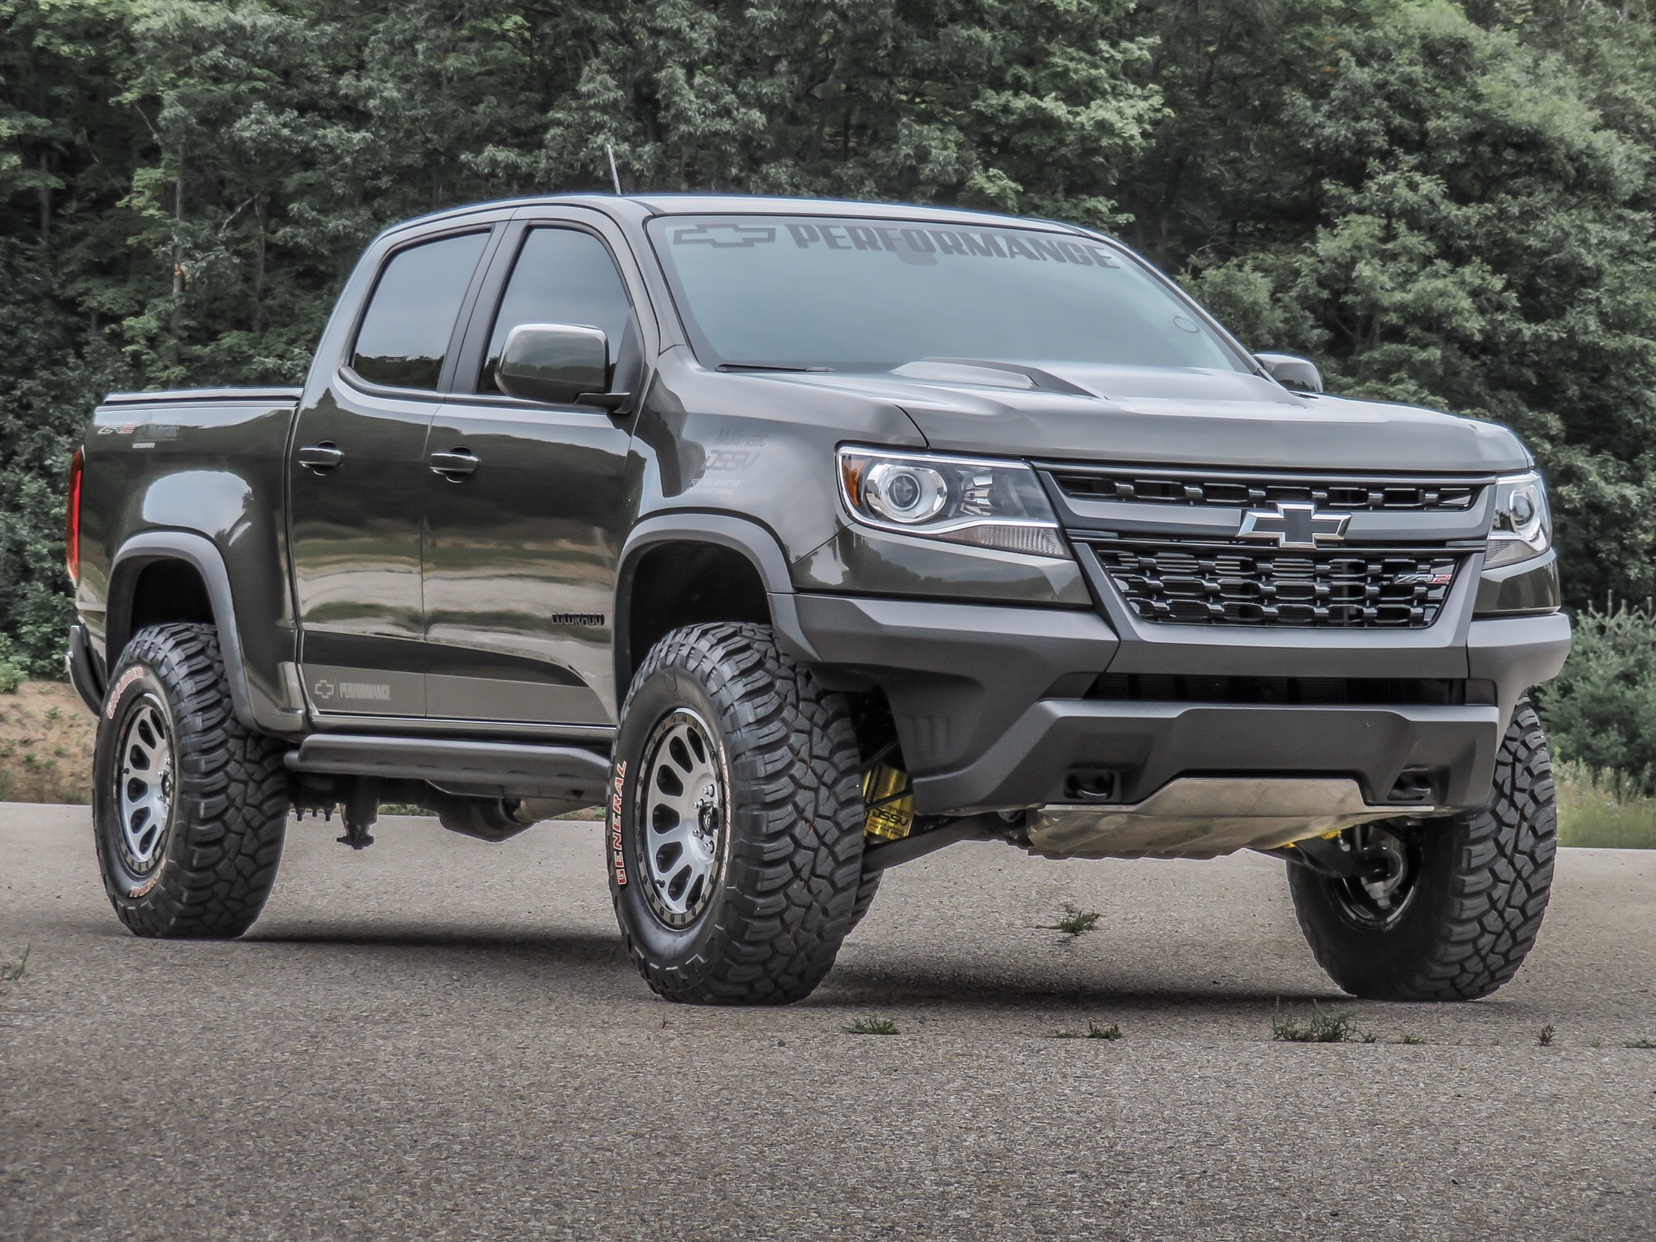 First Gmc Truck. GMC Launches 2019 Sierra AT4 And Off Road Ready Sub Brand. 2016 Toyota Hilux ...